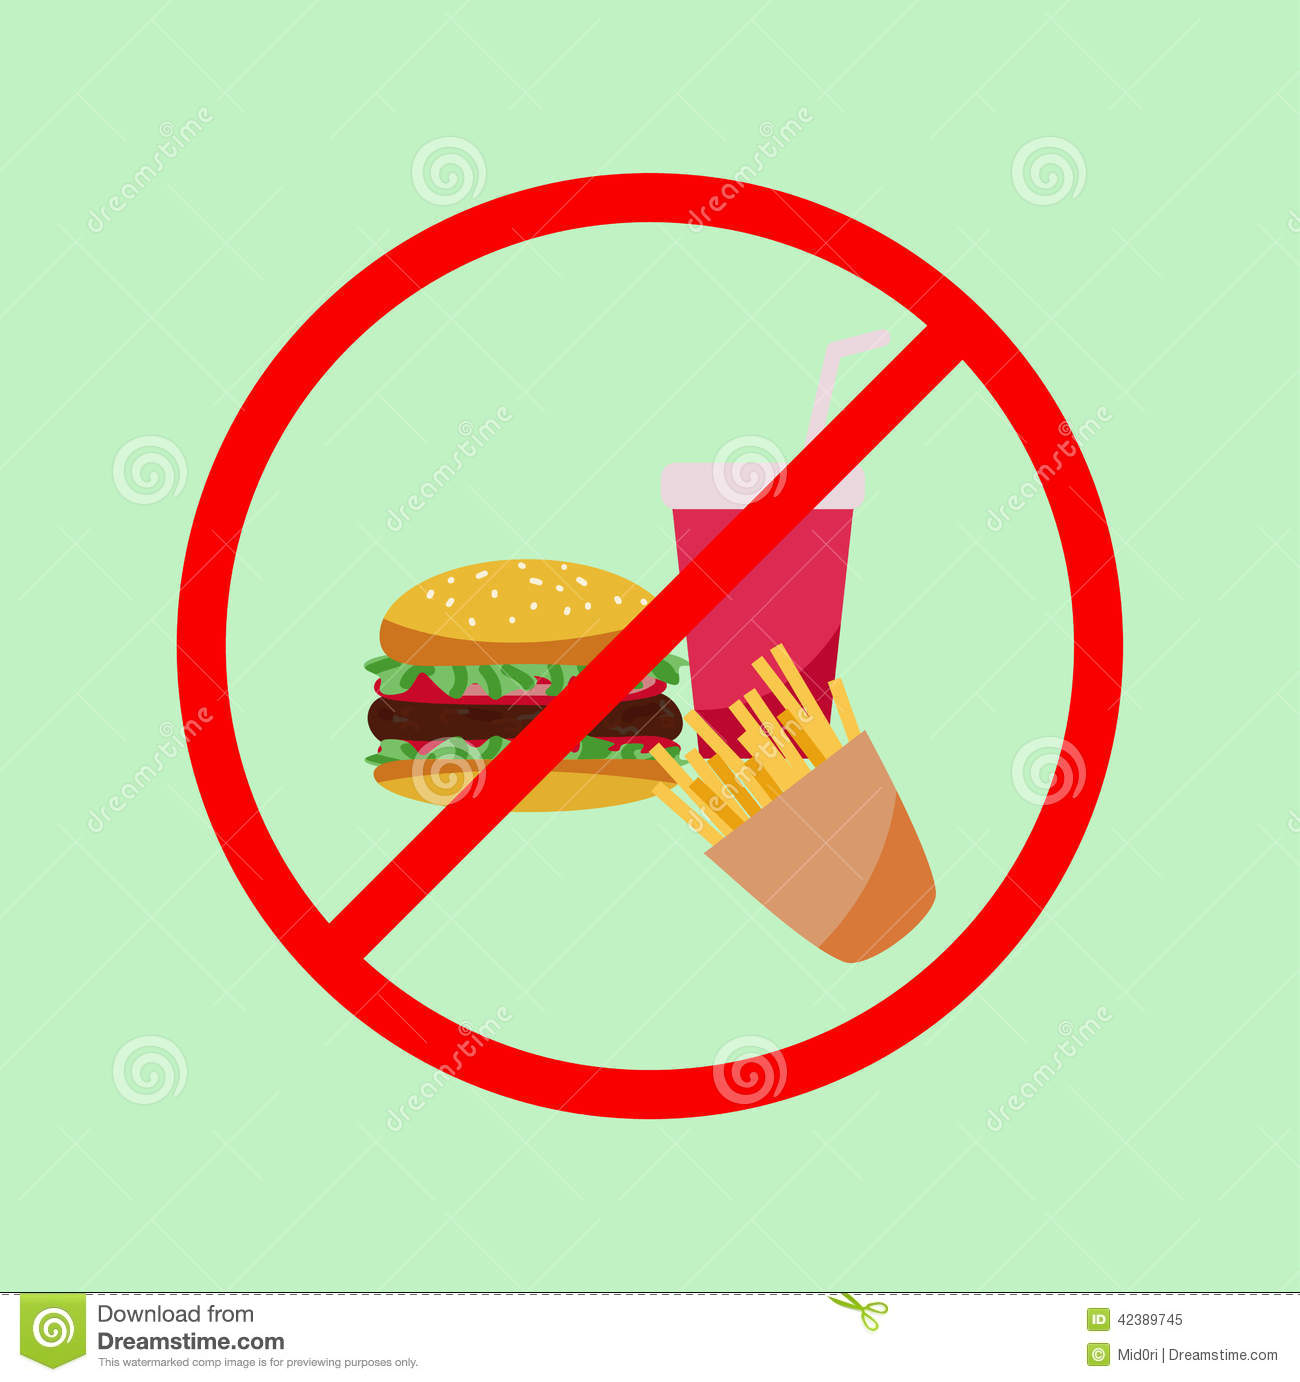 No junk food poster stock vector  Illustration of safety